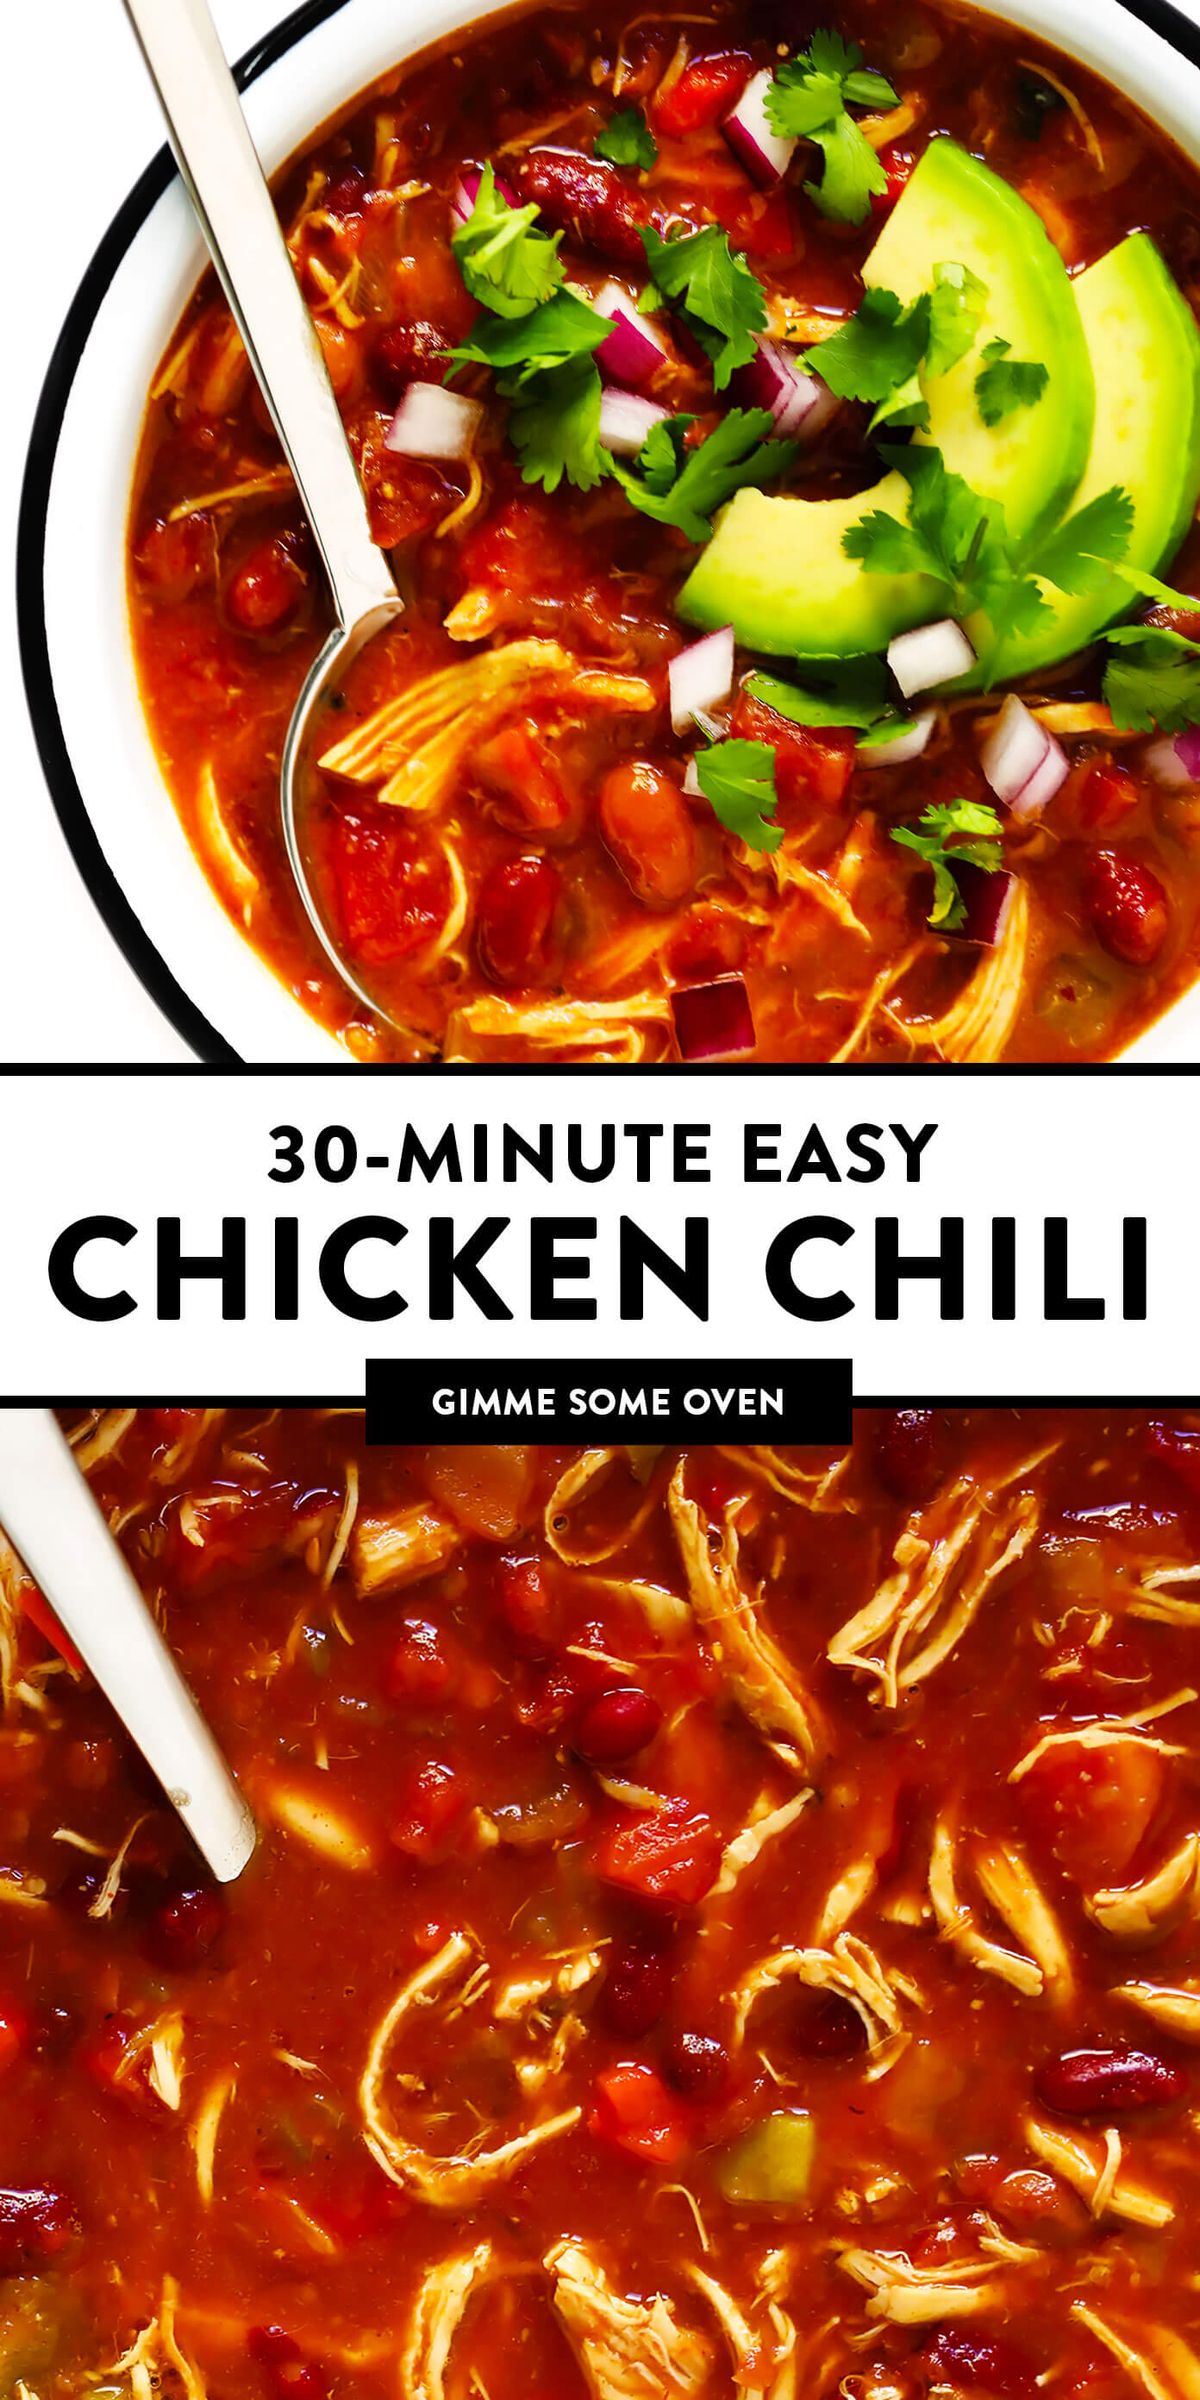 This red chicken chili recipe is easy to make on the stovetop in just 30 minutes, it's naturally gluten-free, and tastes SO cozy and delicious. The leftovers also freeze and reheat well, making this a great soup for healthy meal prep. | gimmesomeoven.com #chicken #chili #mexican #mealprep #glutenfree #healthy #freezermeals #soup #stew